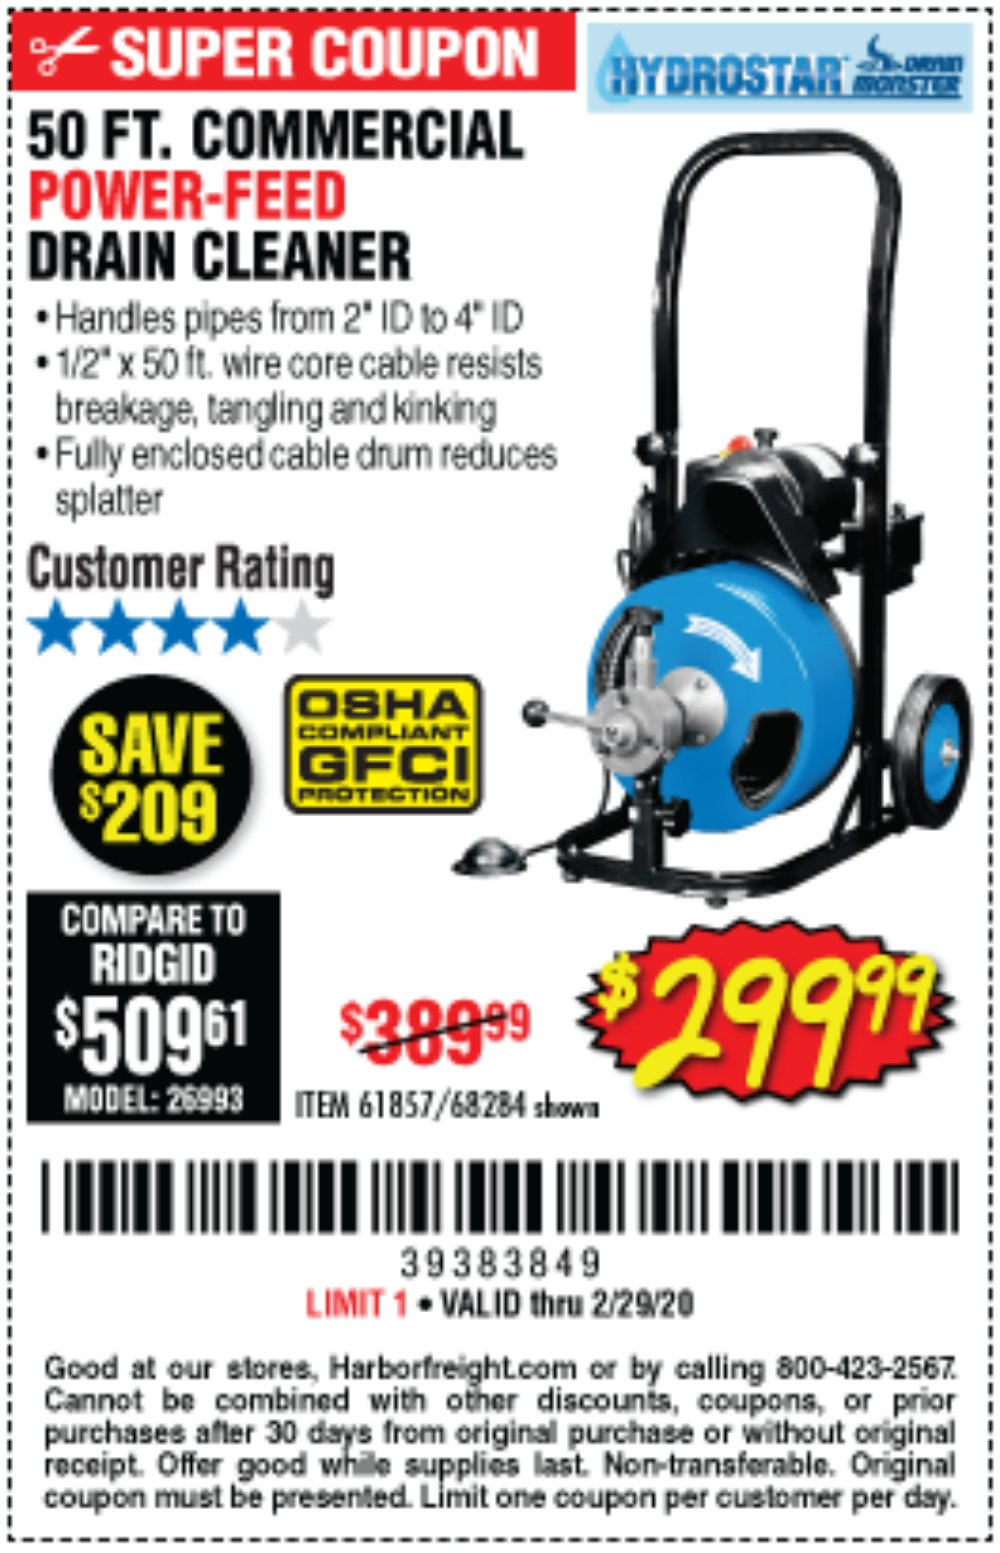 Harbor Freight Coupon, HF Coupons - 50 Ft. Commercial Power-feed Drain Cleaner